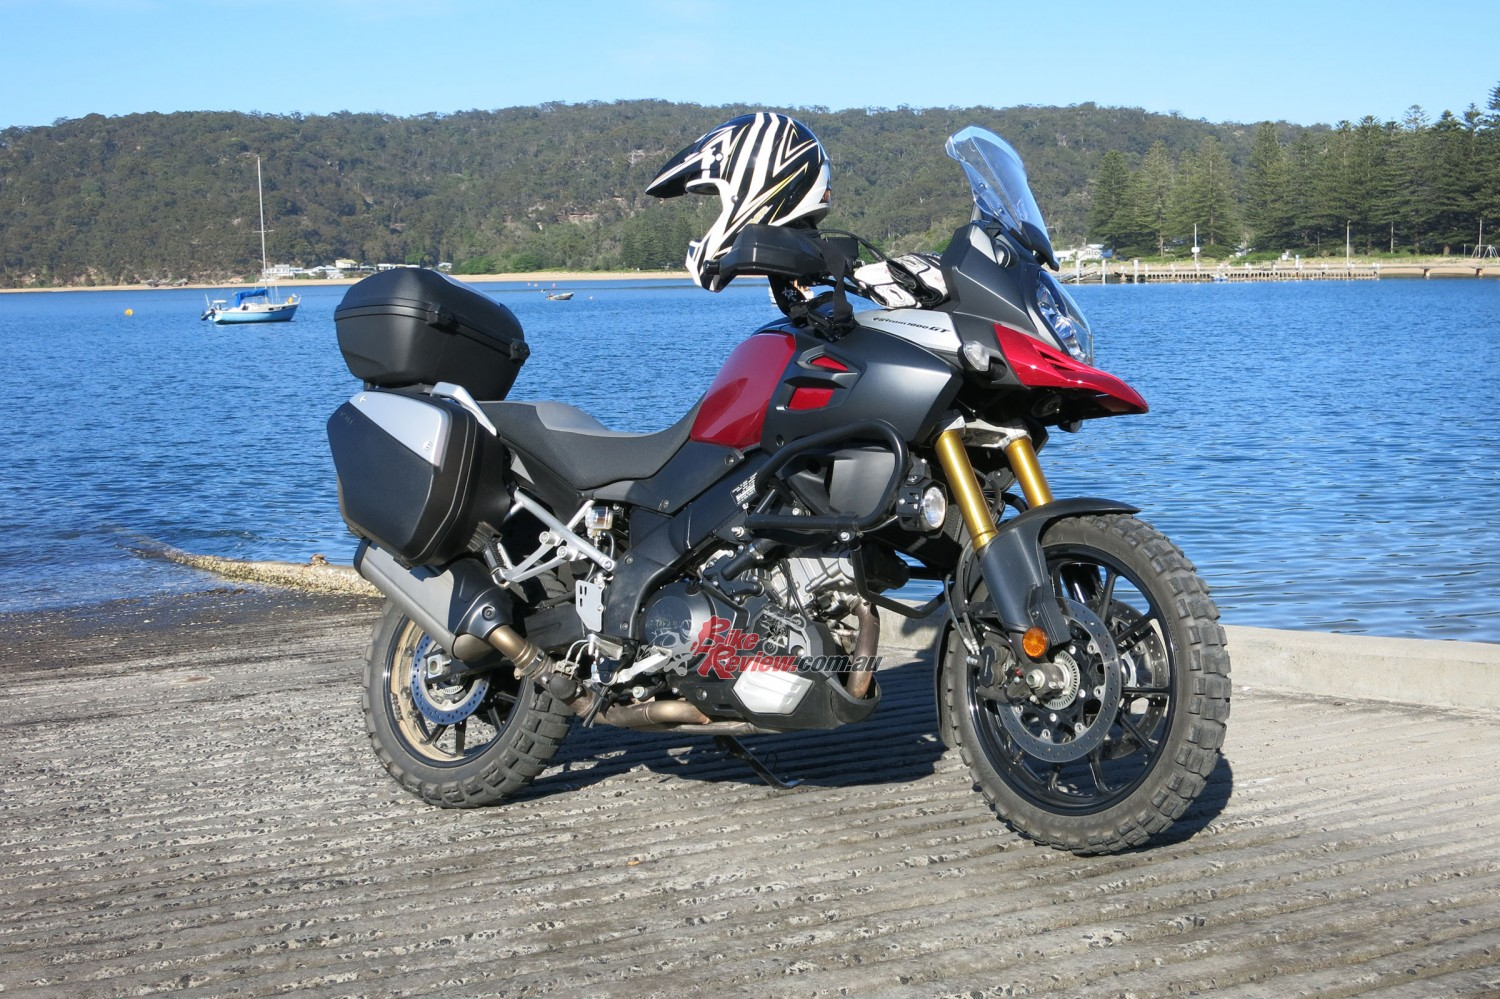 Suzuki V Strom Adventure Price